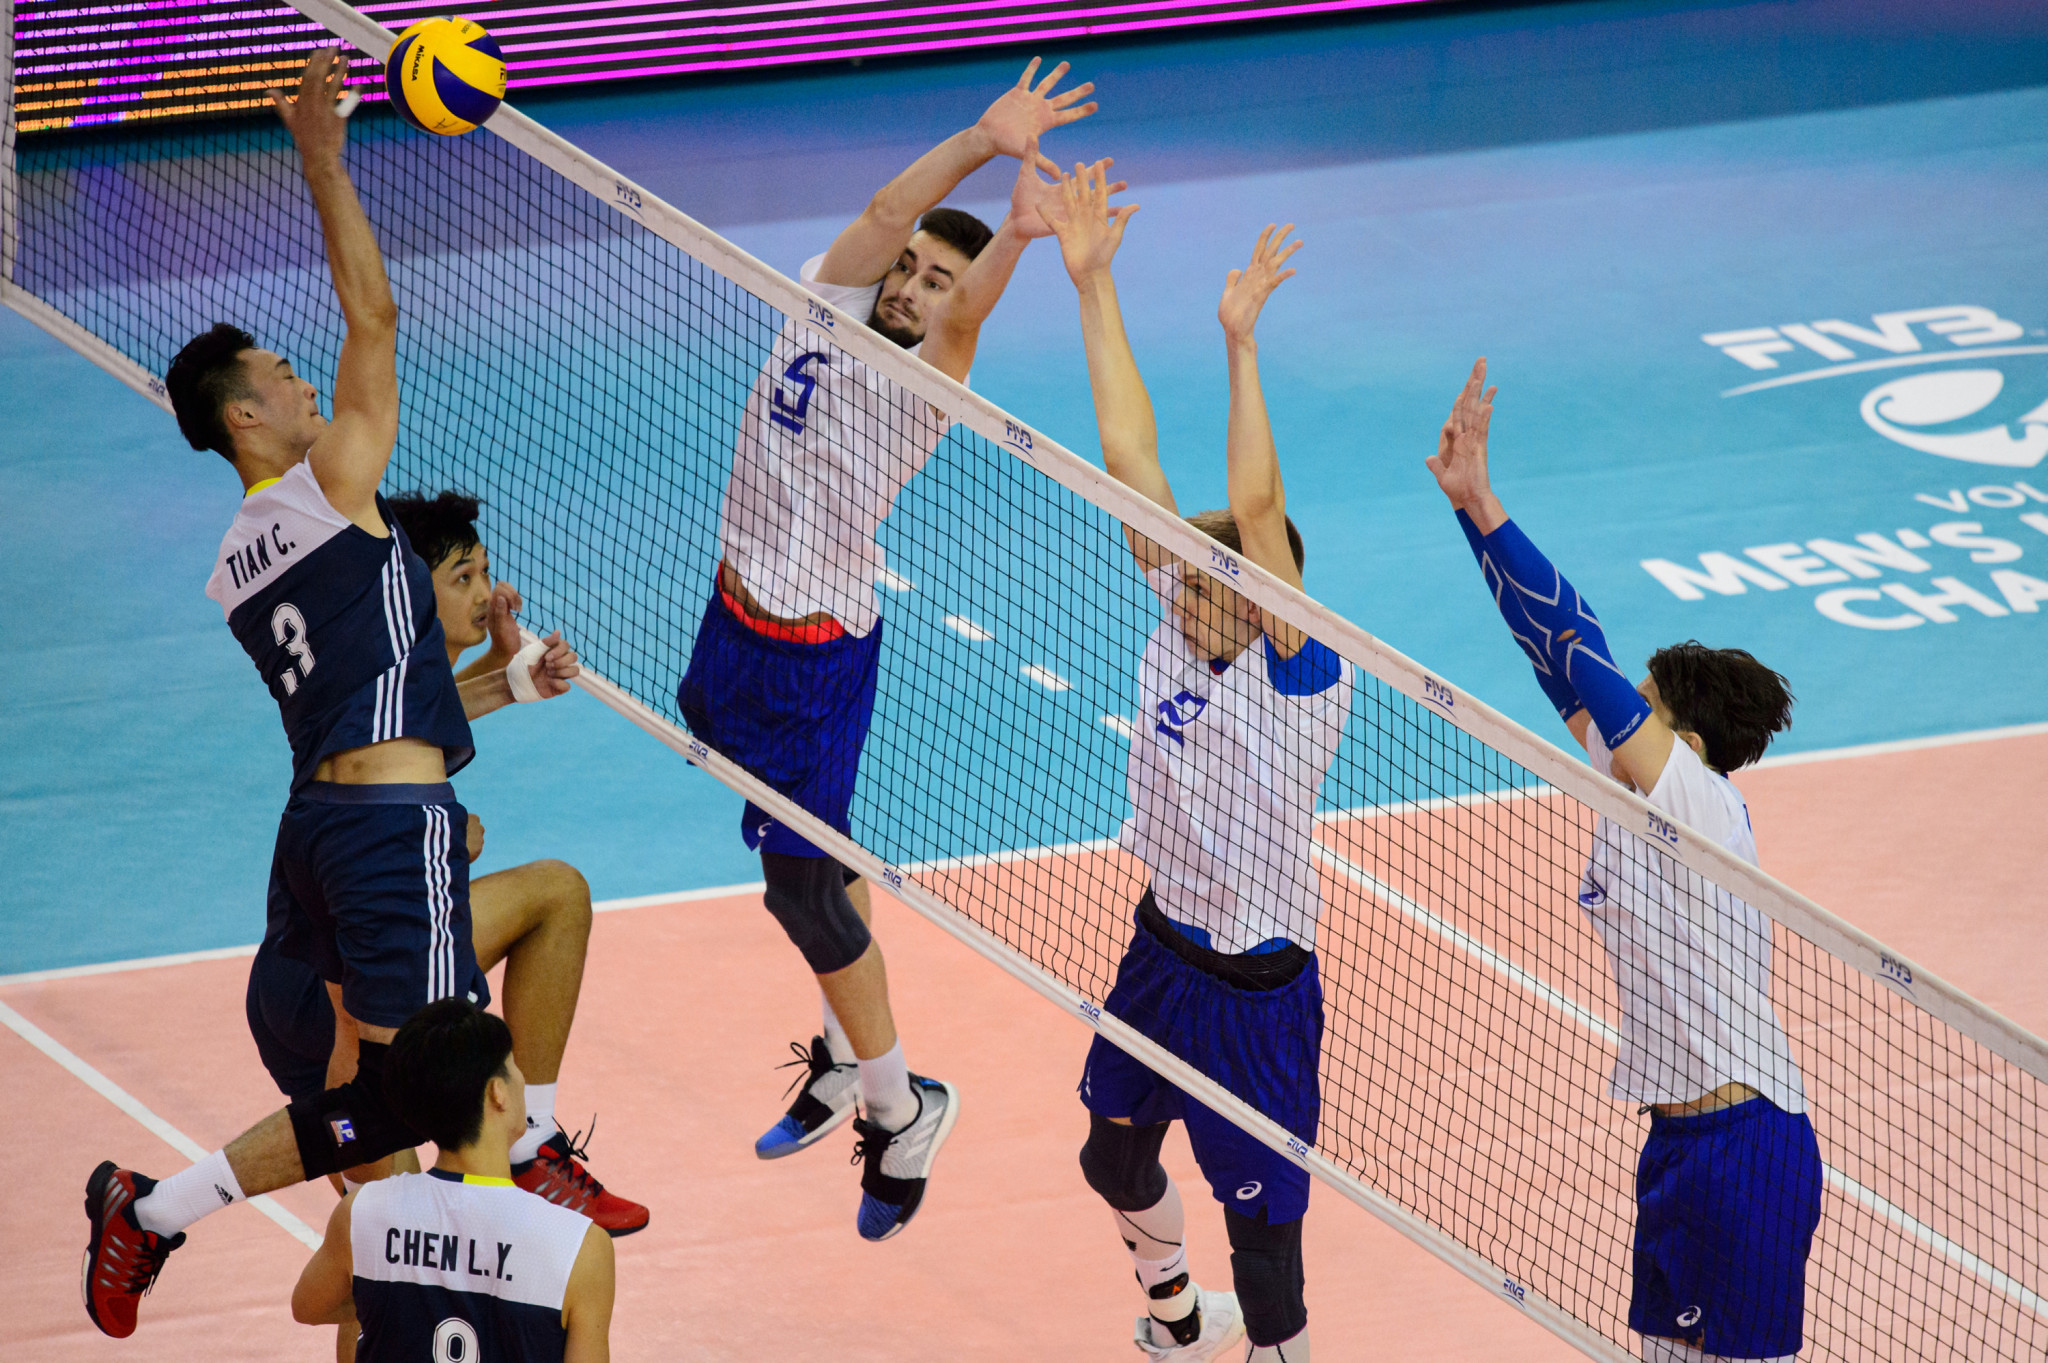 Russia defeated China to reach the semi-finals ©FIVB